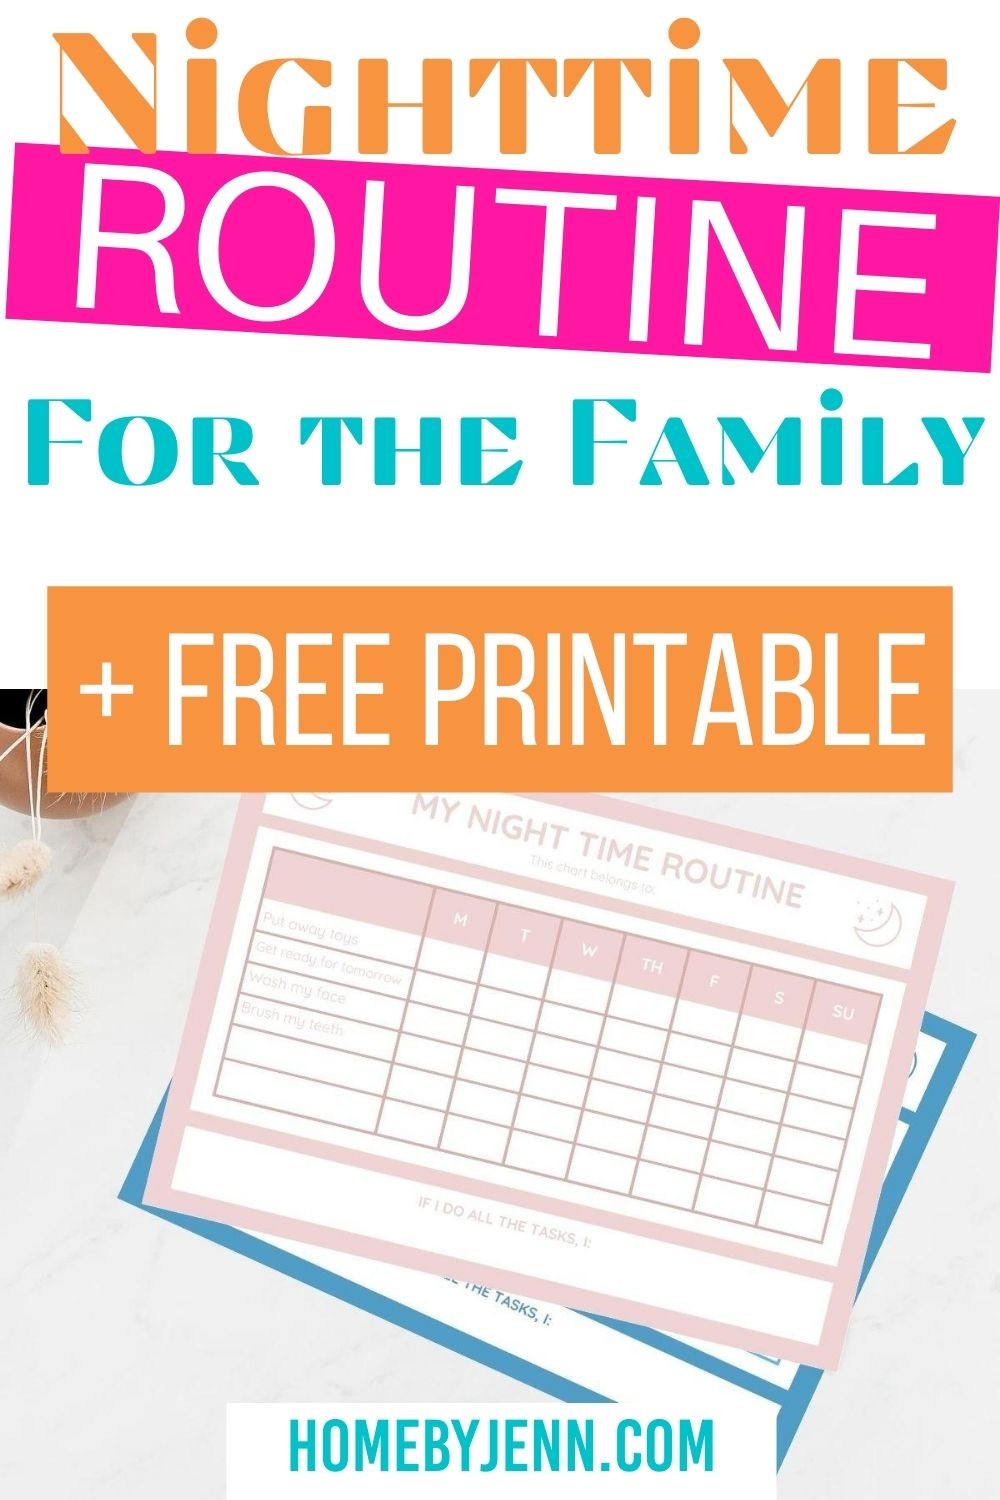 Setting up a night time routine is key for healthy sleep habits. Learn how to set up a nighttime routine that will be helpful for the whole family. Download the free night time routine checklist too! via @homebyjenn